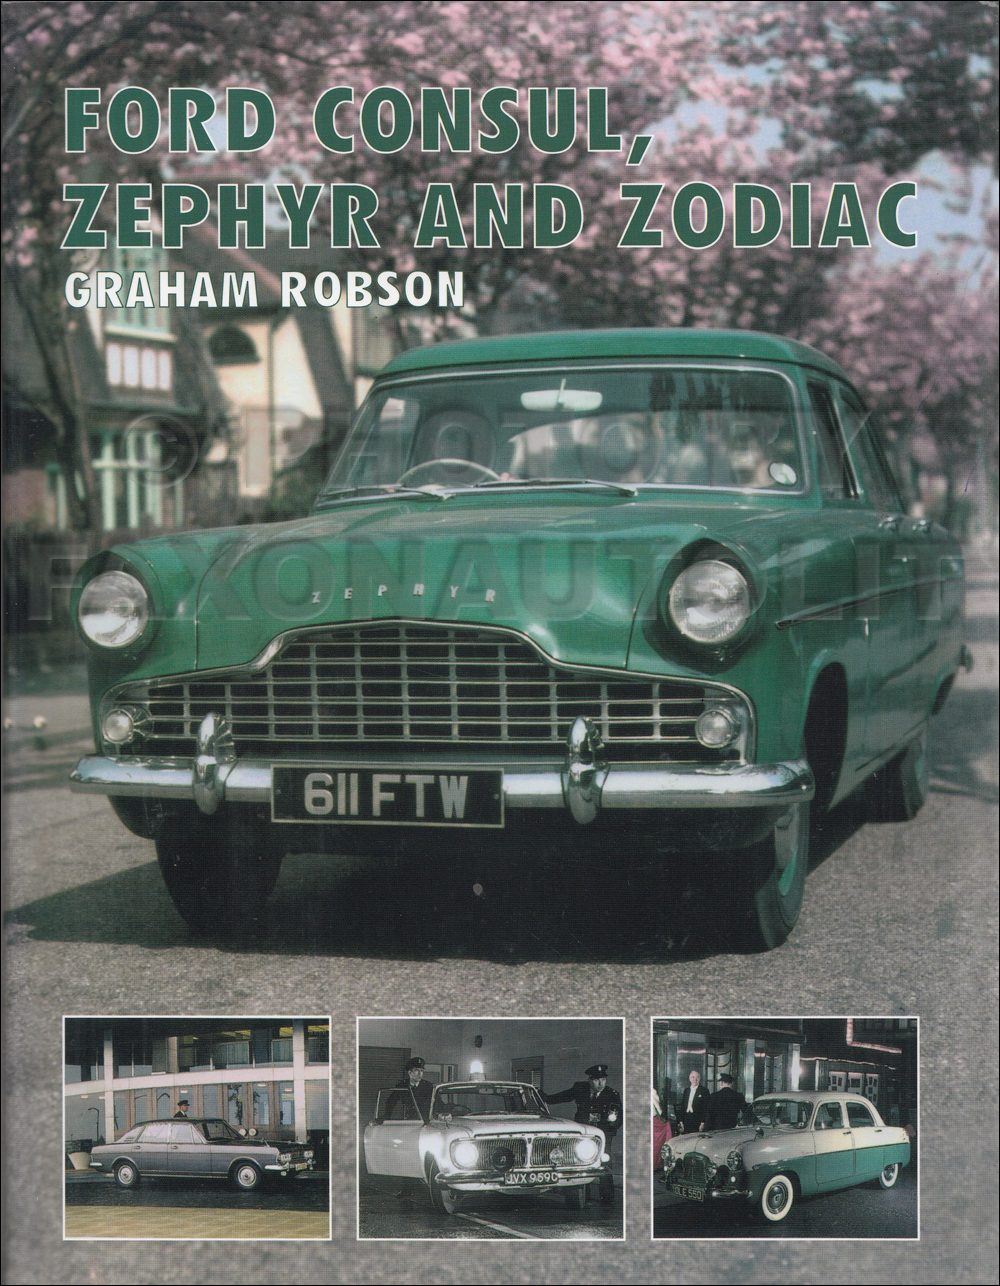 Find Maintenance Shop Service Manuals By Make Faxon 1960 Pontiac Wiring Diagram Ford Consul Zephyr Zodiac Year History Of 1951 1971 Uk Cars